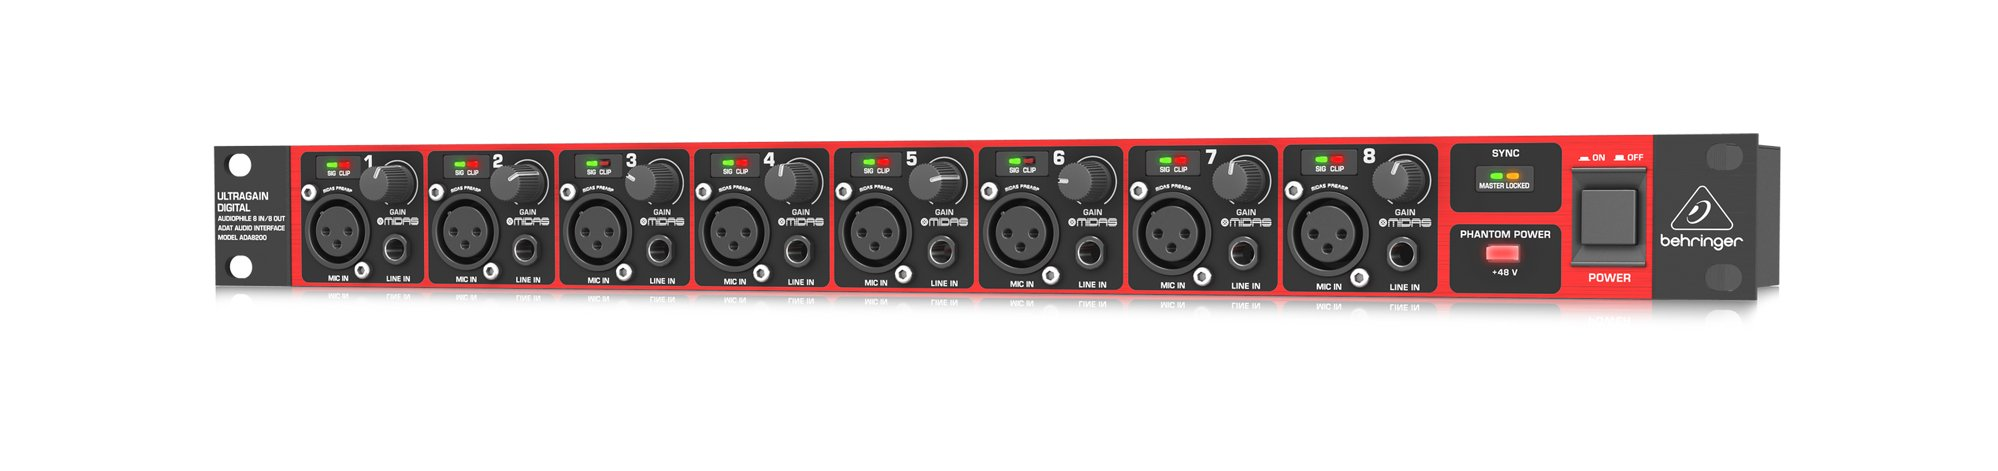 8x8 ADAT Audio Interface with Midas Preamplifiers